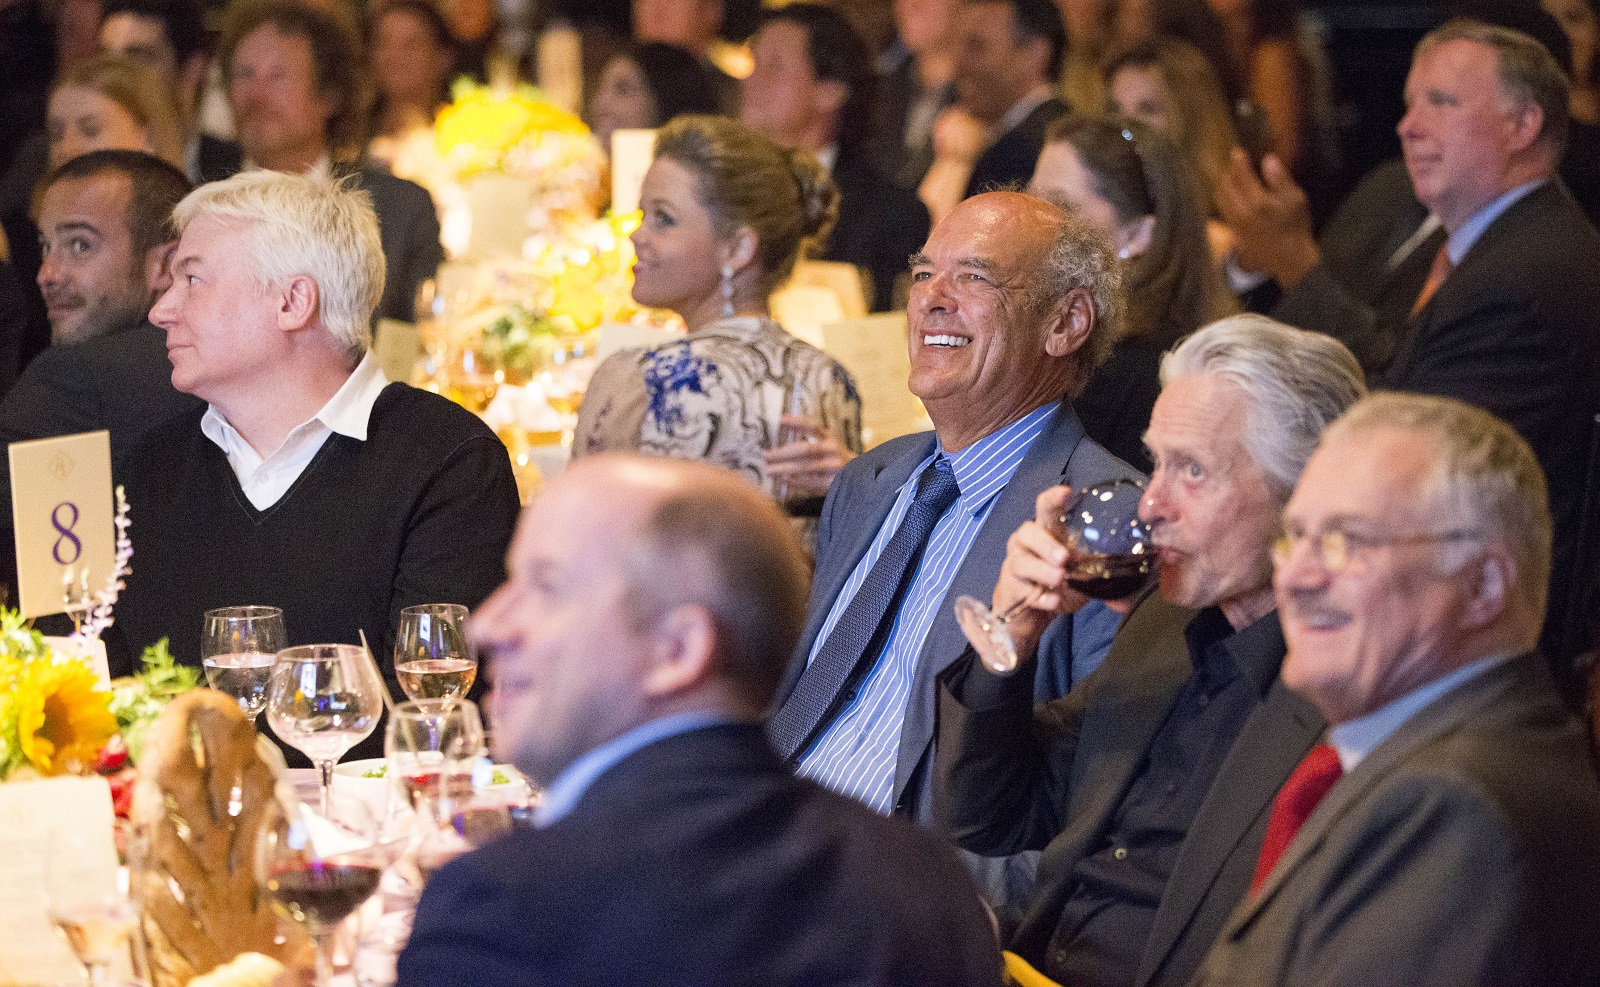 Legendary producer Shep Gordon, center, sits with actors Mike Myers, left, and Michael Douglas, right, during a fundraiser he co-hosted to start a scholarship to the Culinary Institute of America in honor of his late friend, legendary chef Roger Verge, at the Lighthouse at Chelsea Piers in New York City. (Derek Gee/Buffalo News)